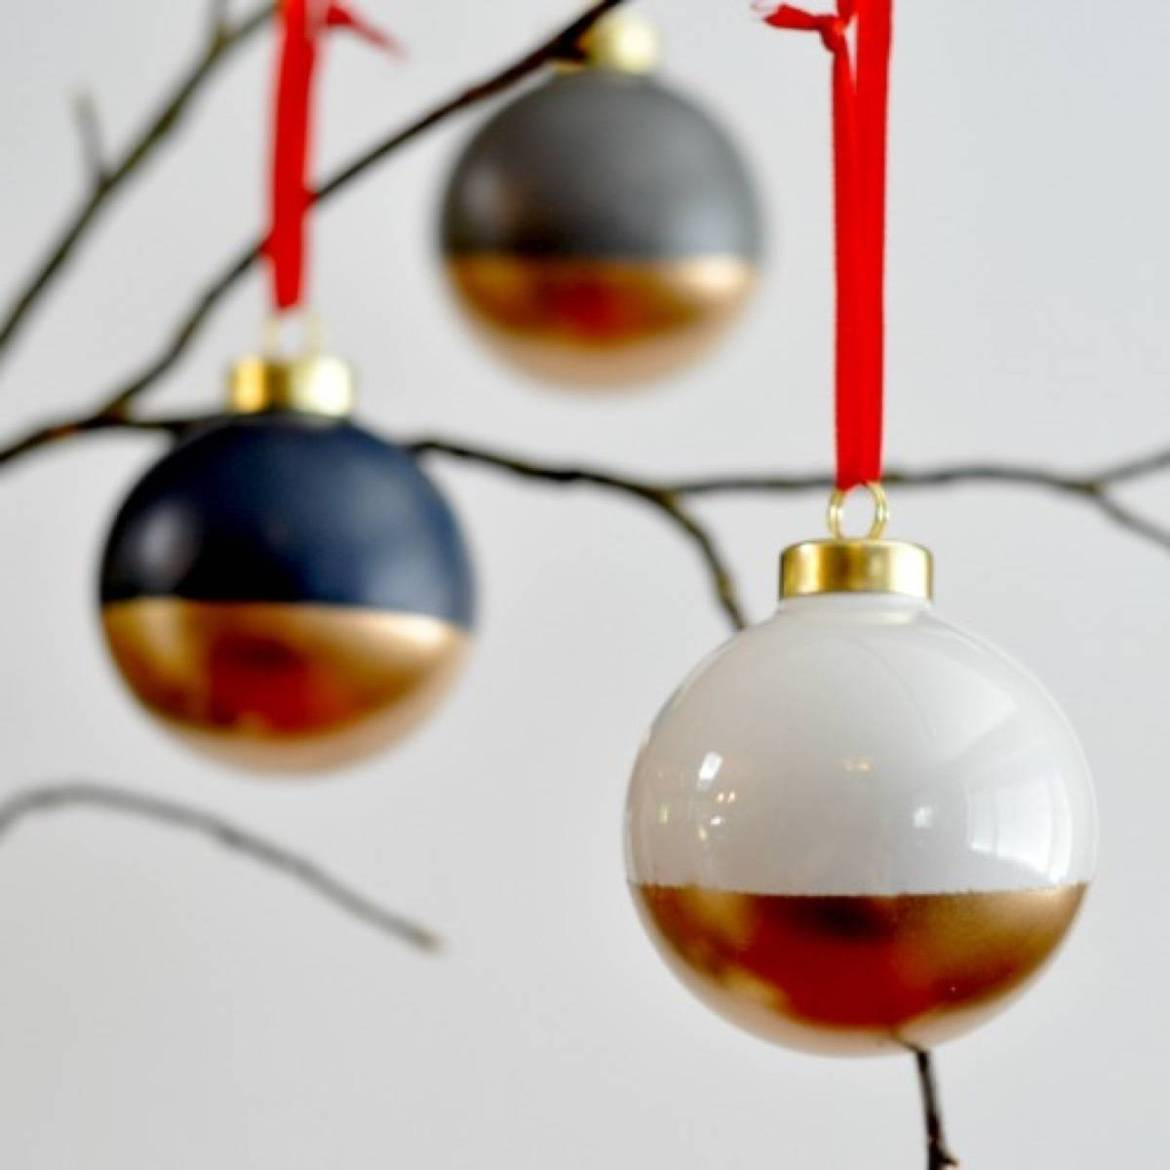 Do it yourself Christmas ornaments | Gold-dipped ornaments